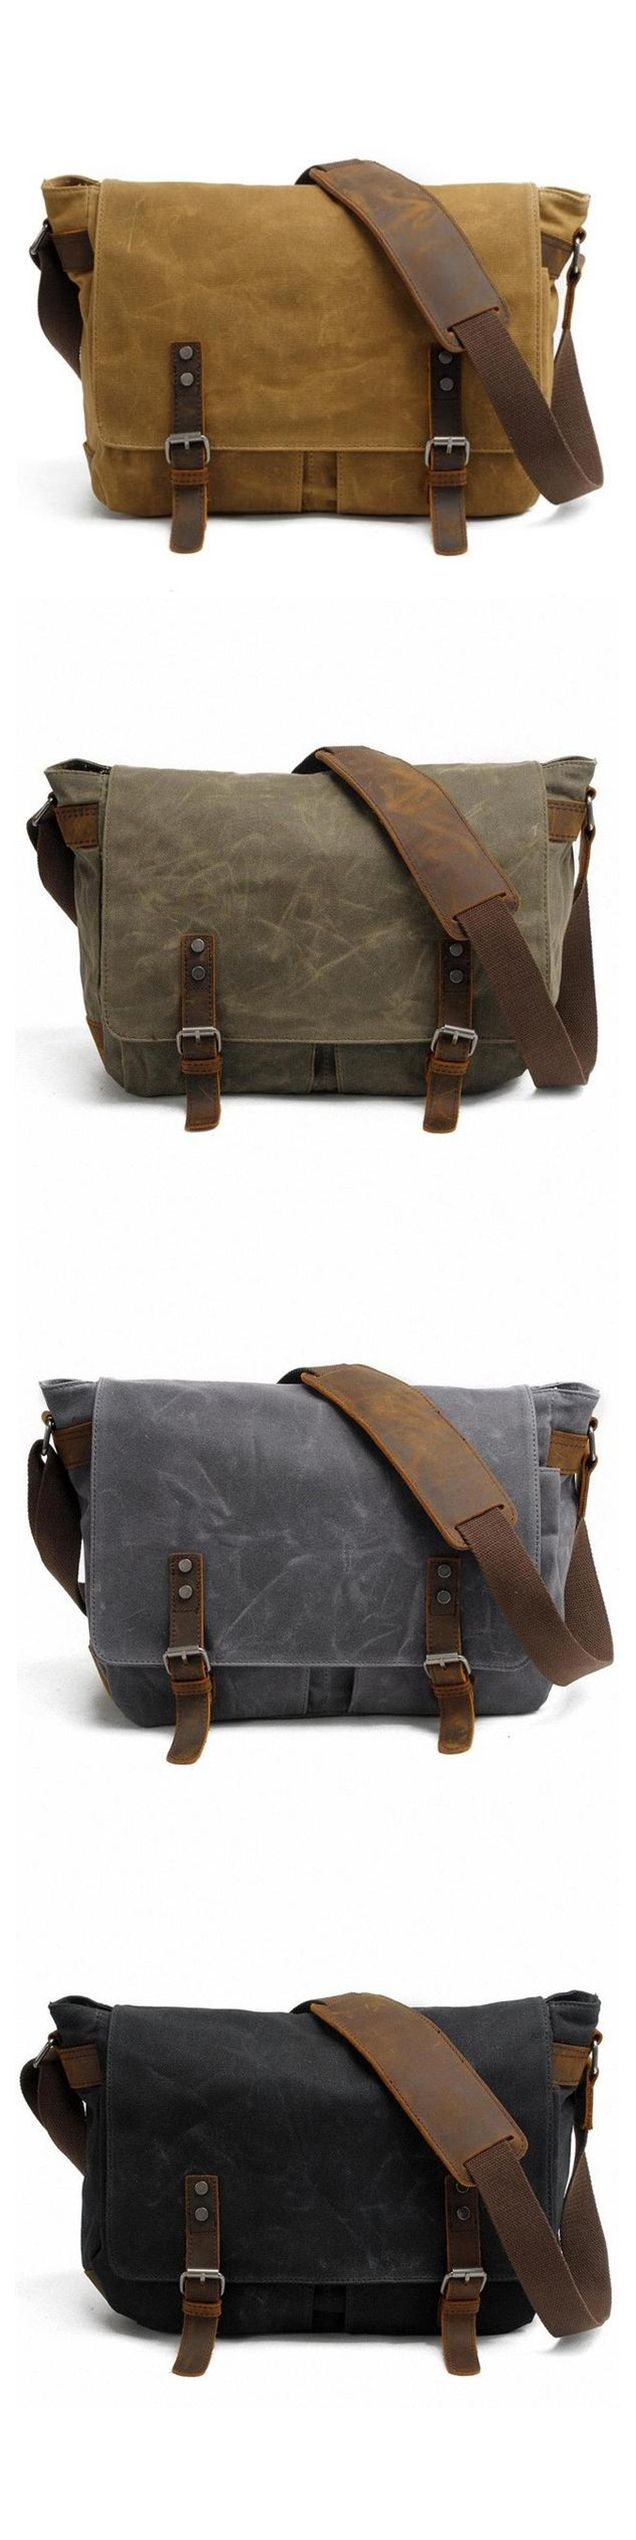 """Vintage canvas messenger bag for a classy look, made of high-quality waterproof canvas and leather. Many compartments inside and outside allow you to keep everything in order and protect your belongings. Great messenger bag for school, college, work or everyday use. A 14"""" laptop will easily fit.  This awesome bag is available in four trendy colors - khaki, black, green and gray."""